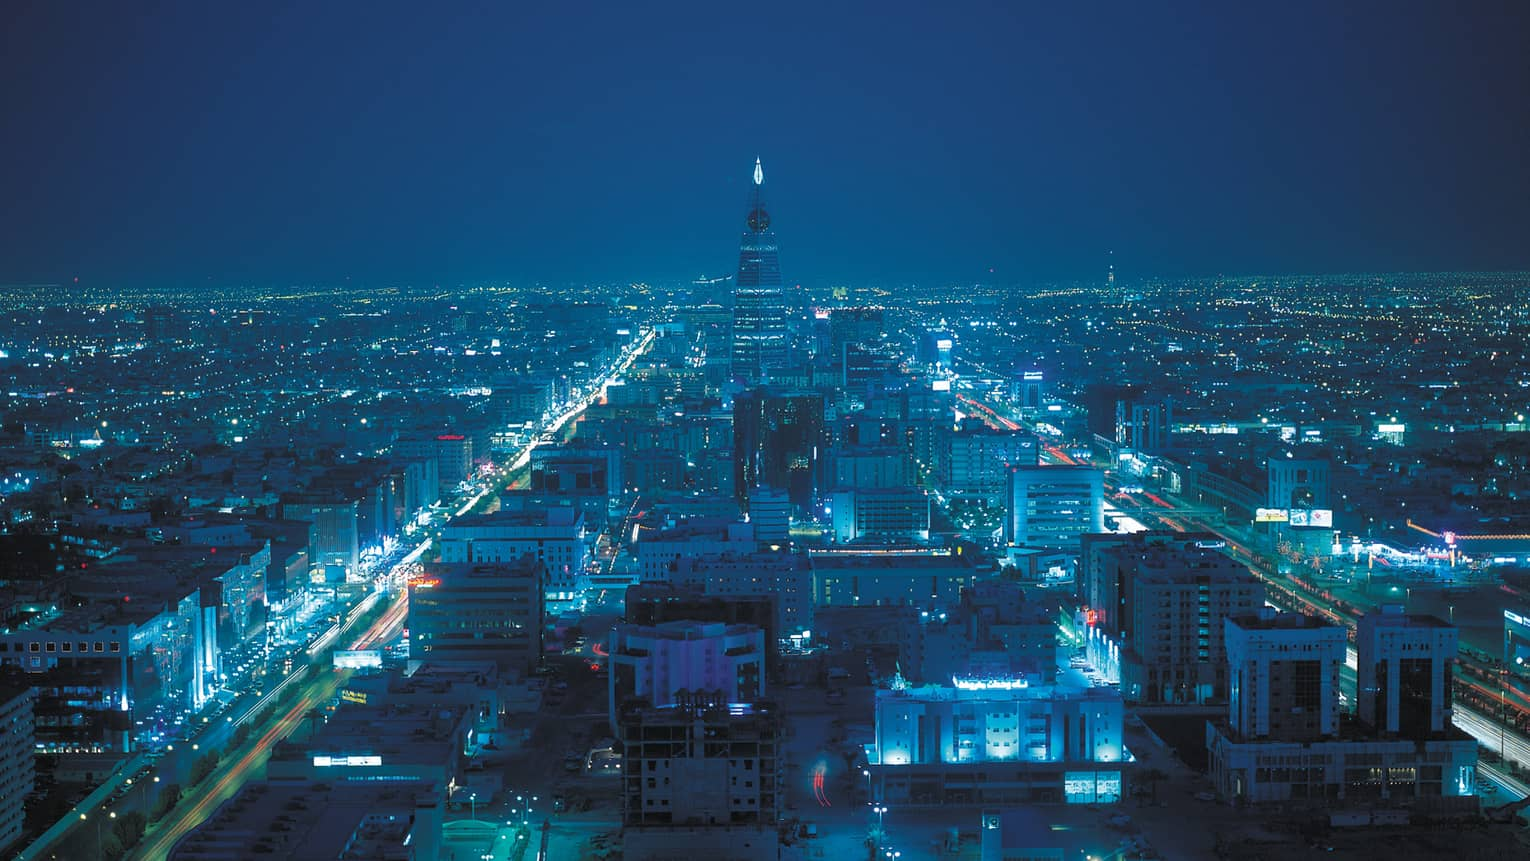 Aerial view of Riyadh buildings and lights at night, blue hues